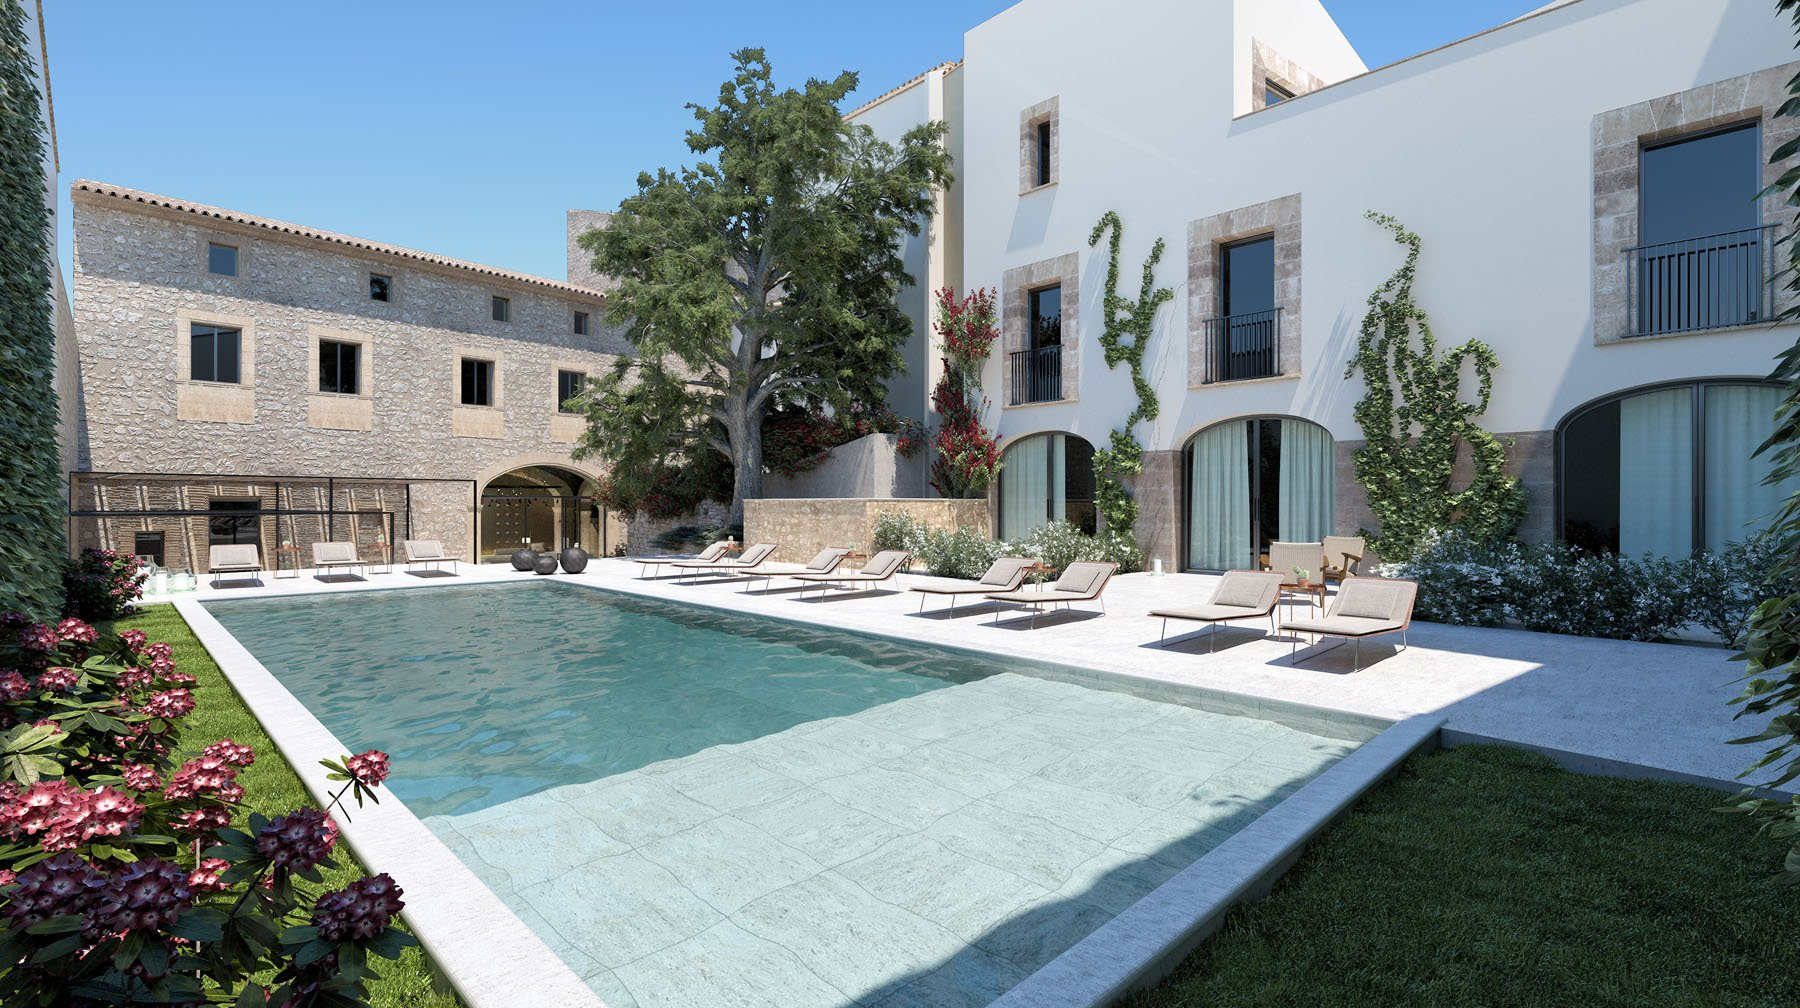 Boutique Hotel Can Aulí - Pool Terrace